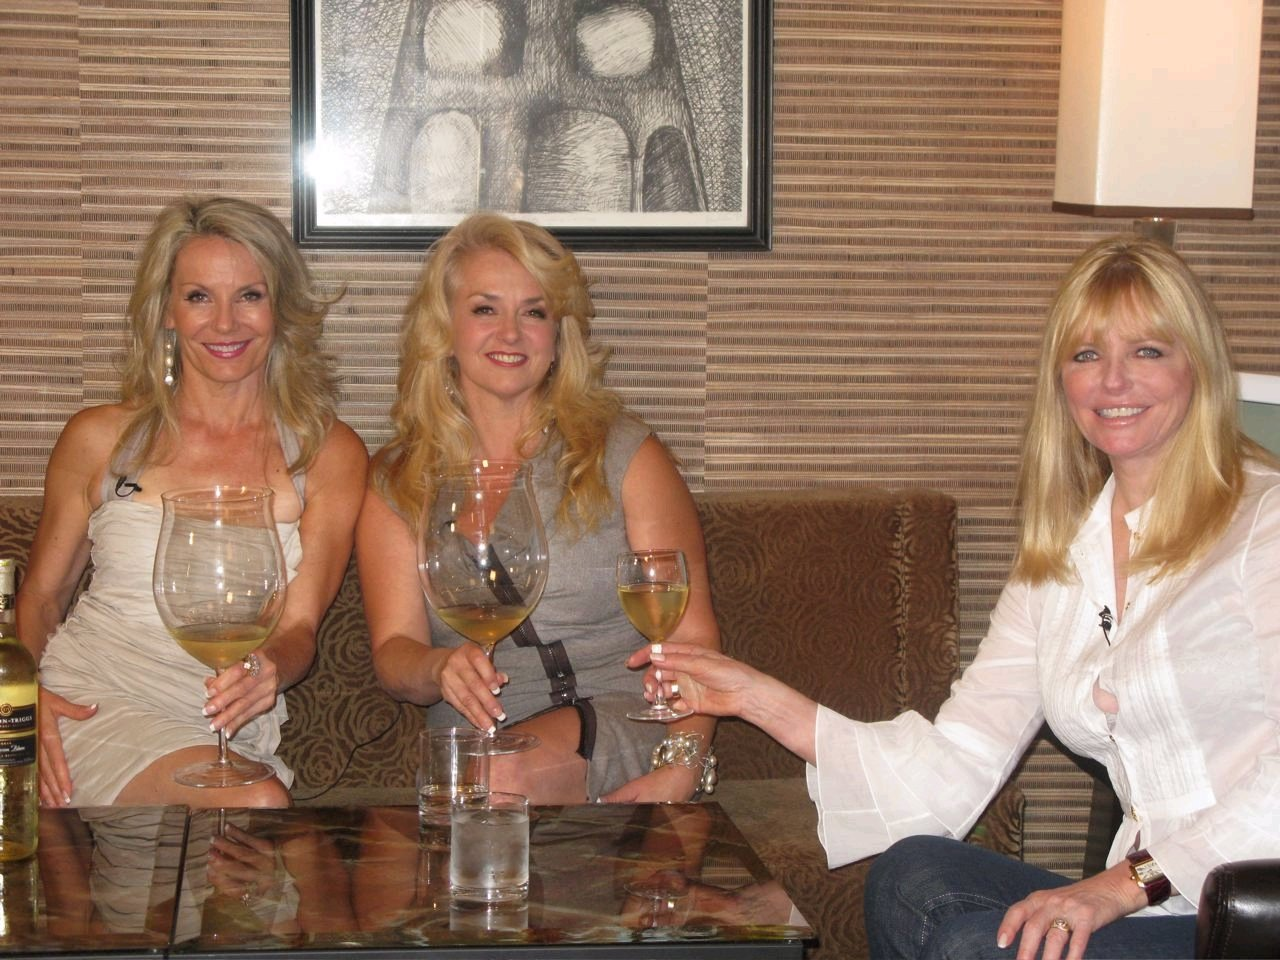 Talking Wine With The Stars, Cheryl Tiegs